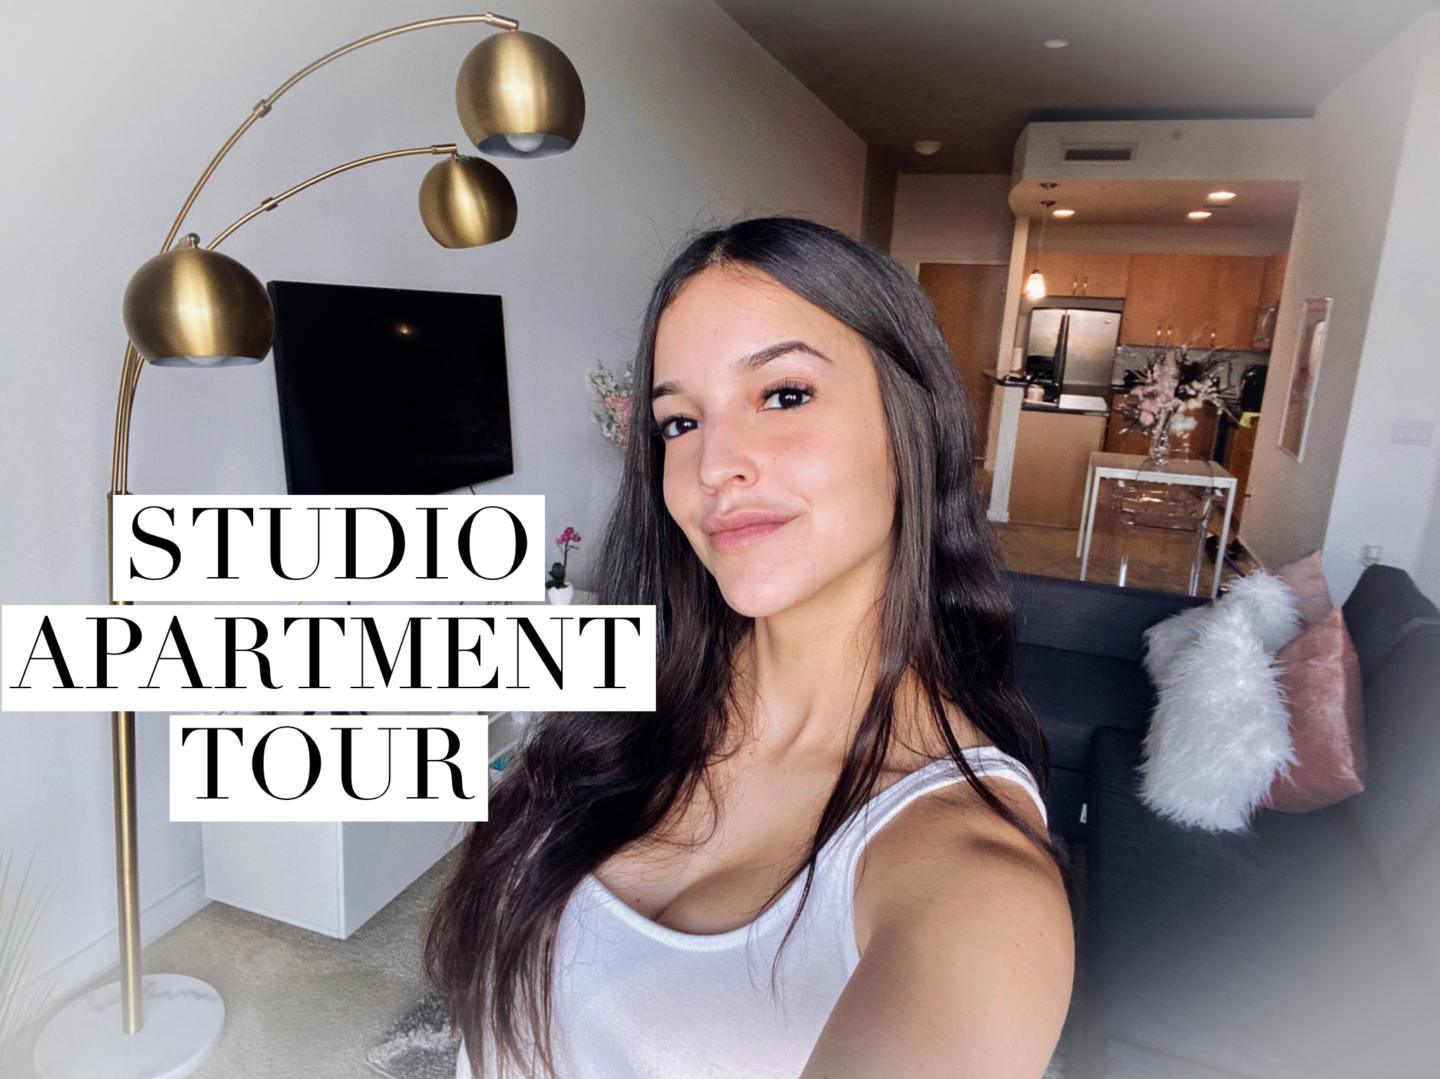 Apartment Tour| Studio Apartment Benefits